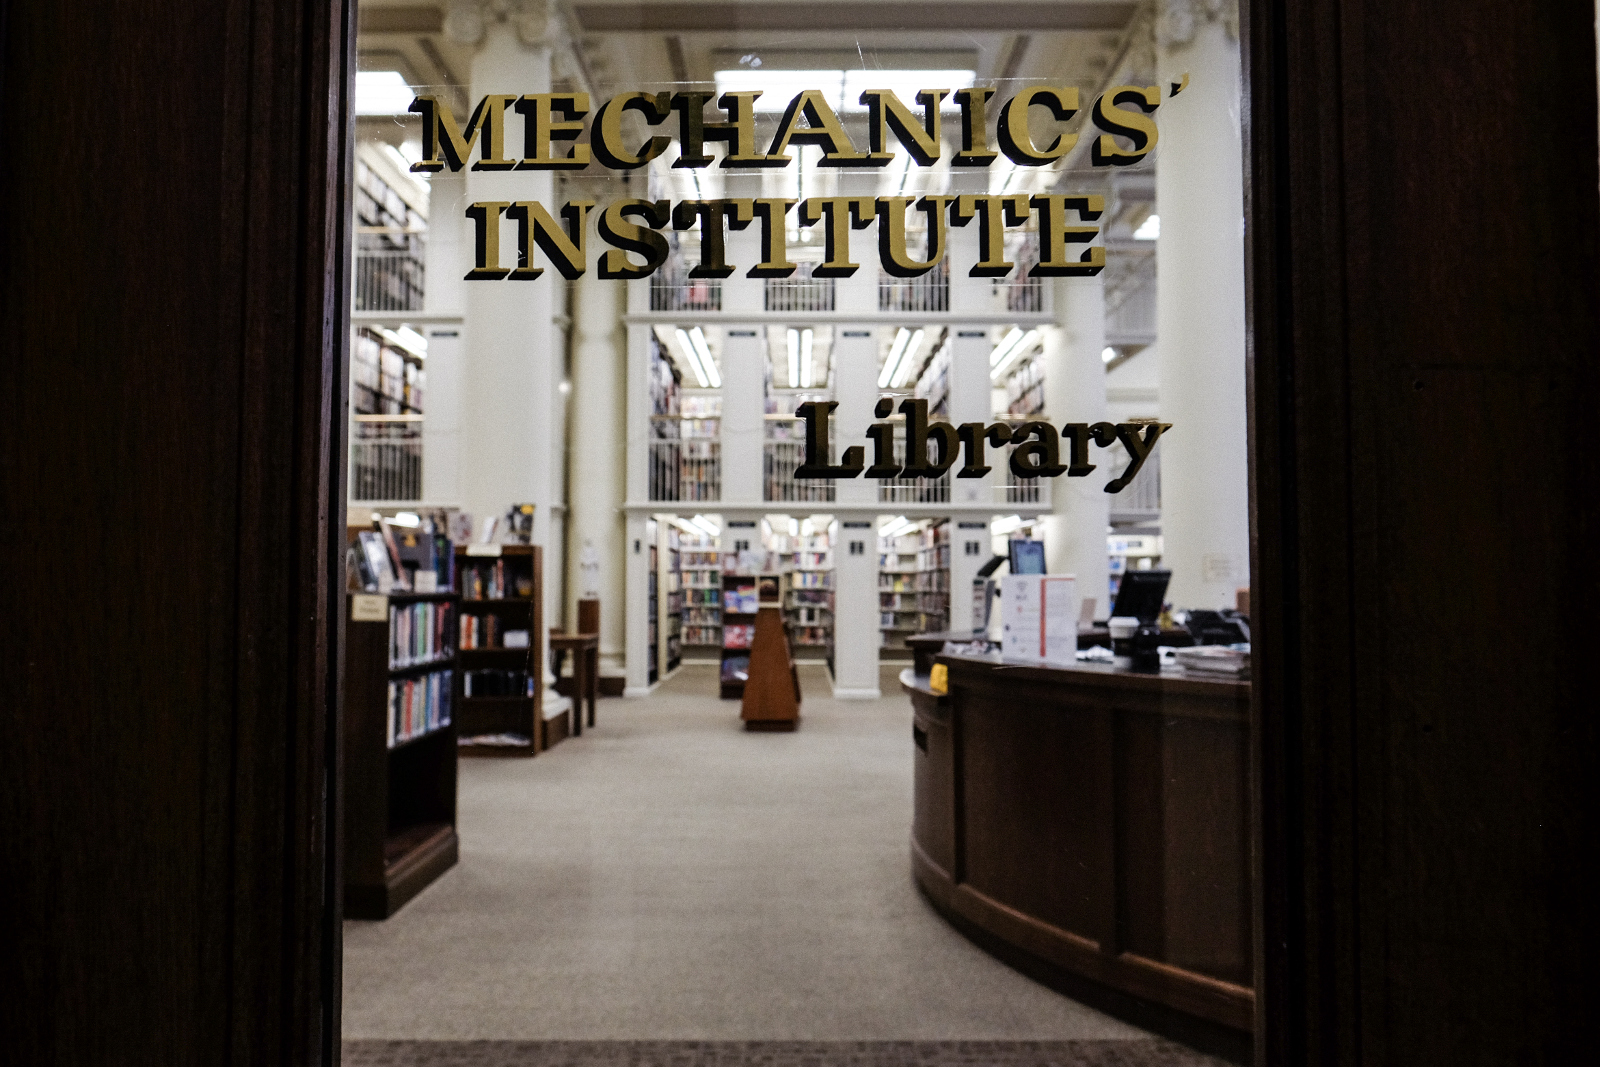 Photo of the library entrance